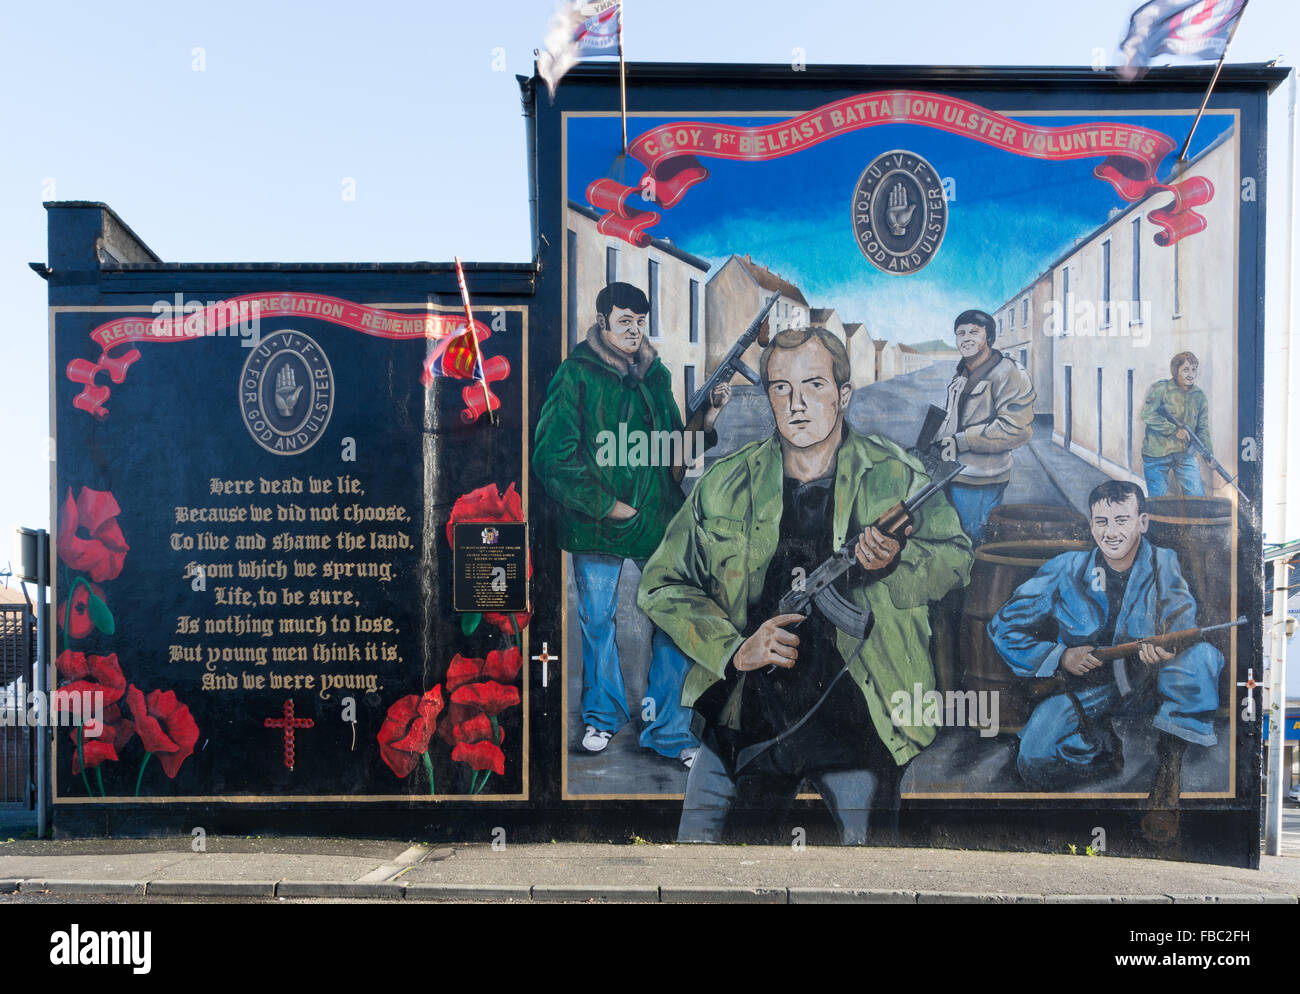 Large UVF mural shpwing local Volunteers who have died in the troubles, located on Belfast Shankill Road - Stock Image